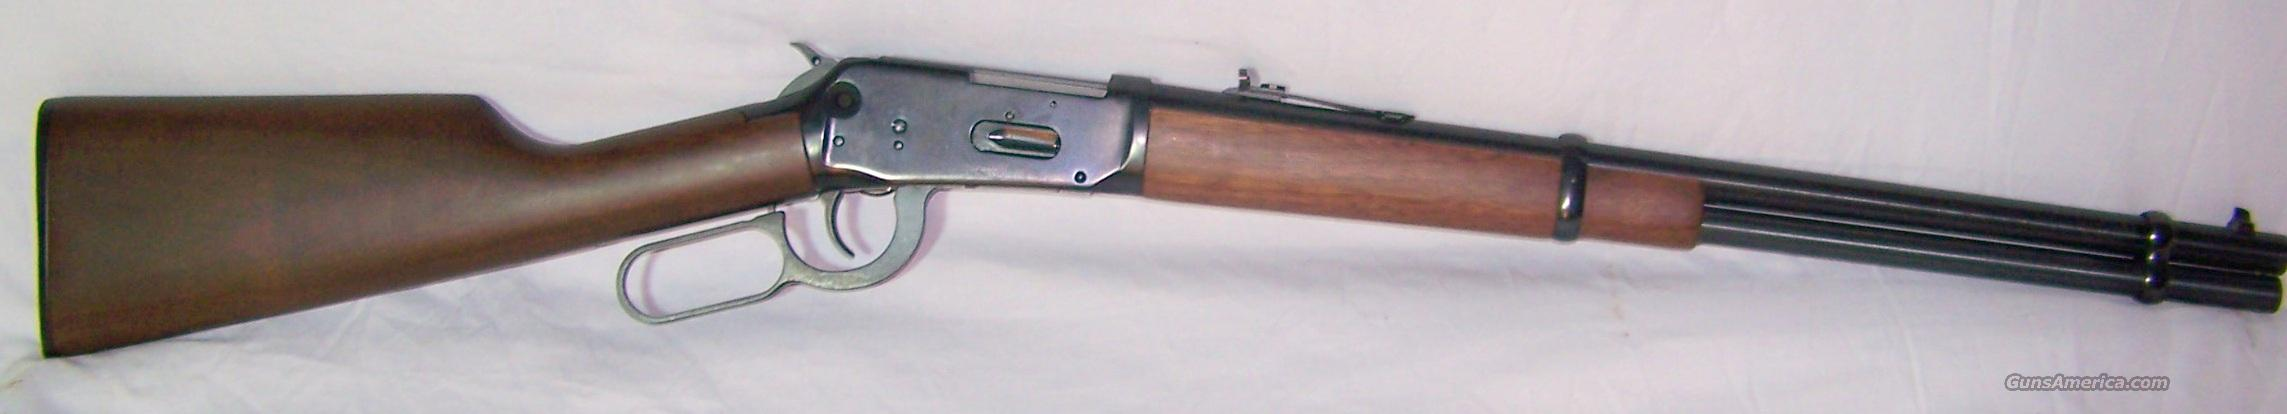 Winchester Model 94AE in .45 COLT  Guns > Rifles > Winchester Rifles - Modern Lever > Model 94 > Post-64